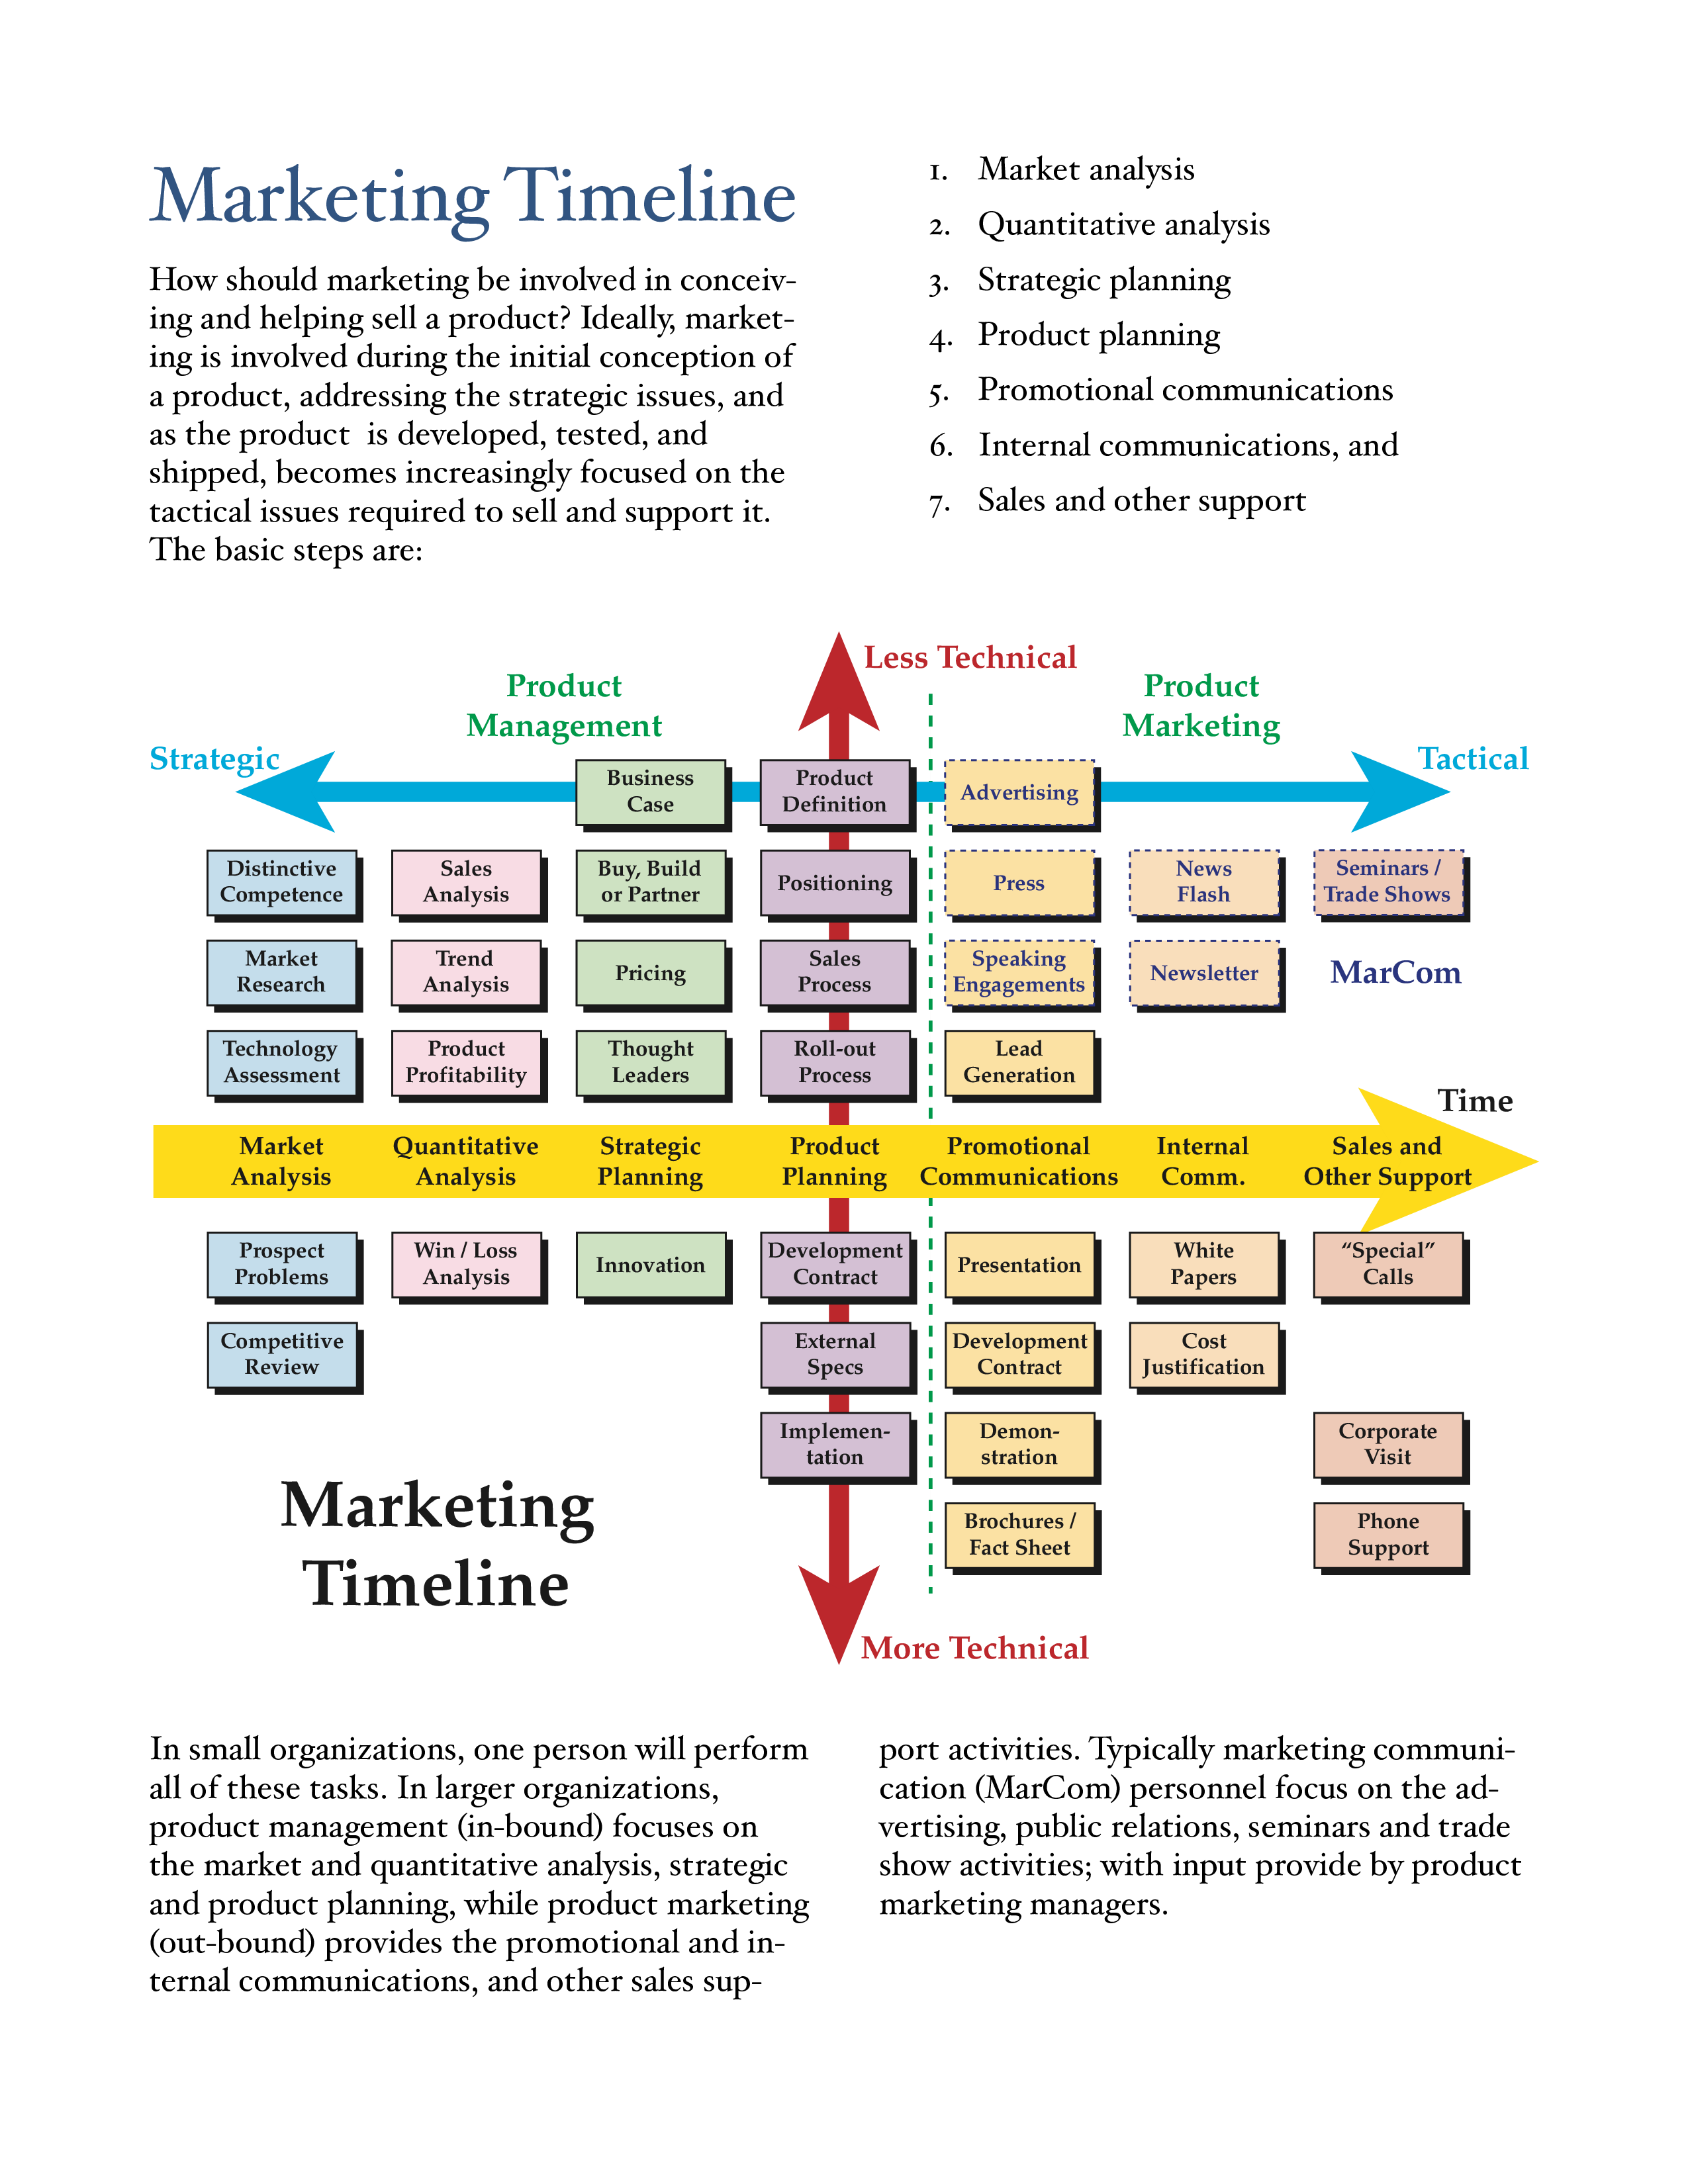 Free Marketing Plan Timeline Templates At Allbusinesstemplatescom - Marketing plan timeline template